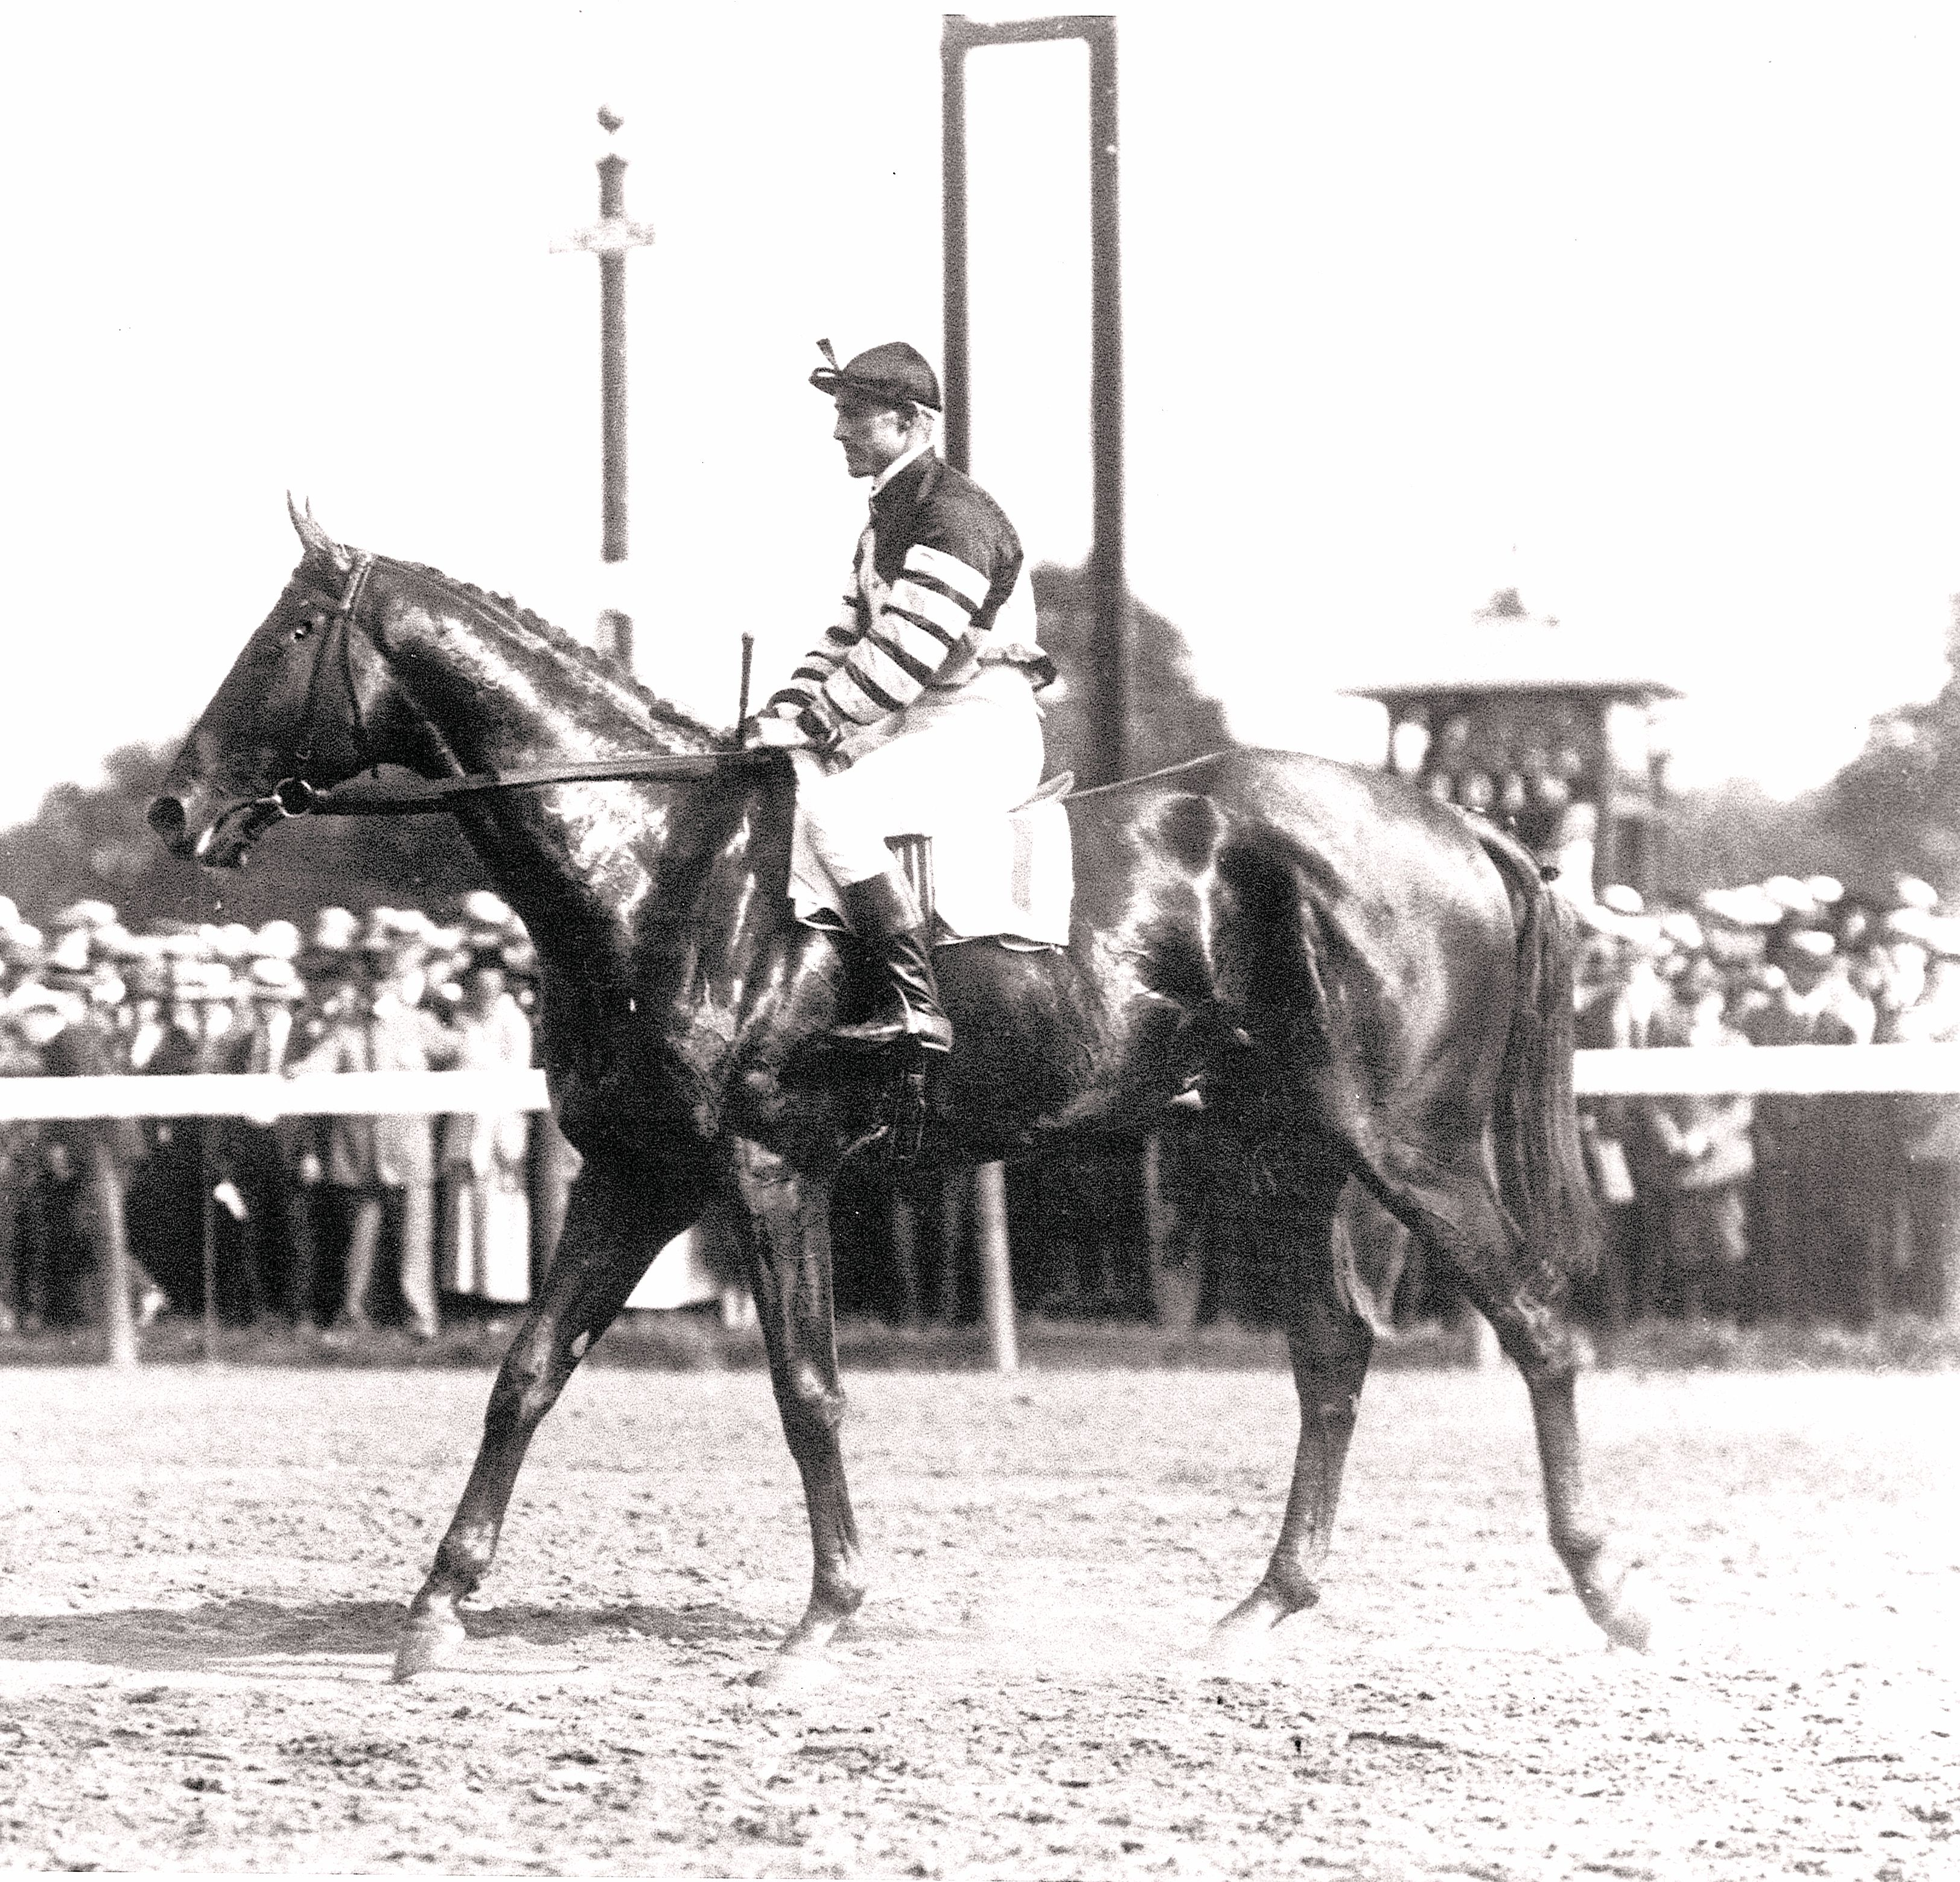 Man o' War (Andy Schuttinger up) at the 1920 Travers Stakes at Saratoga Race Course (Keeneland Library Cook Collection/Museum Collection)